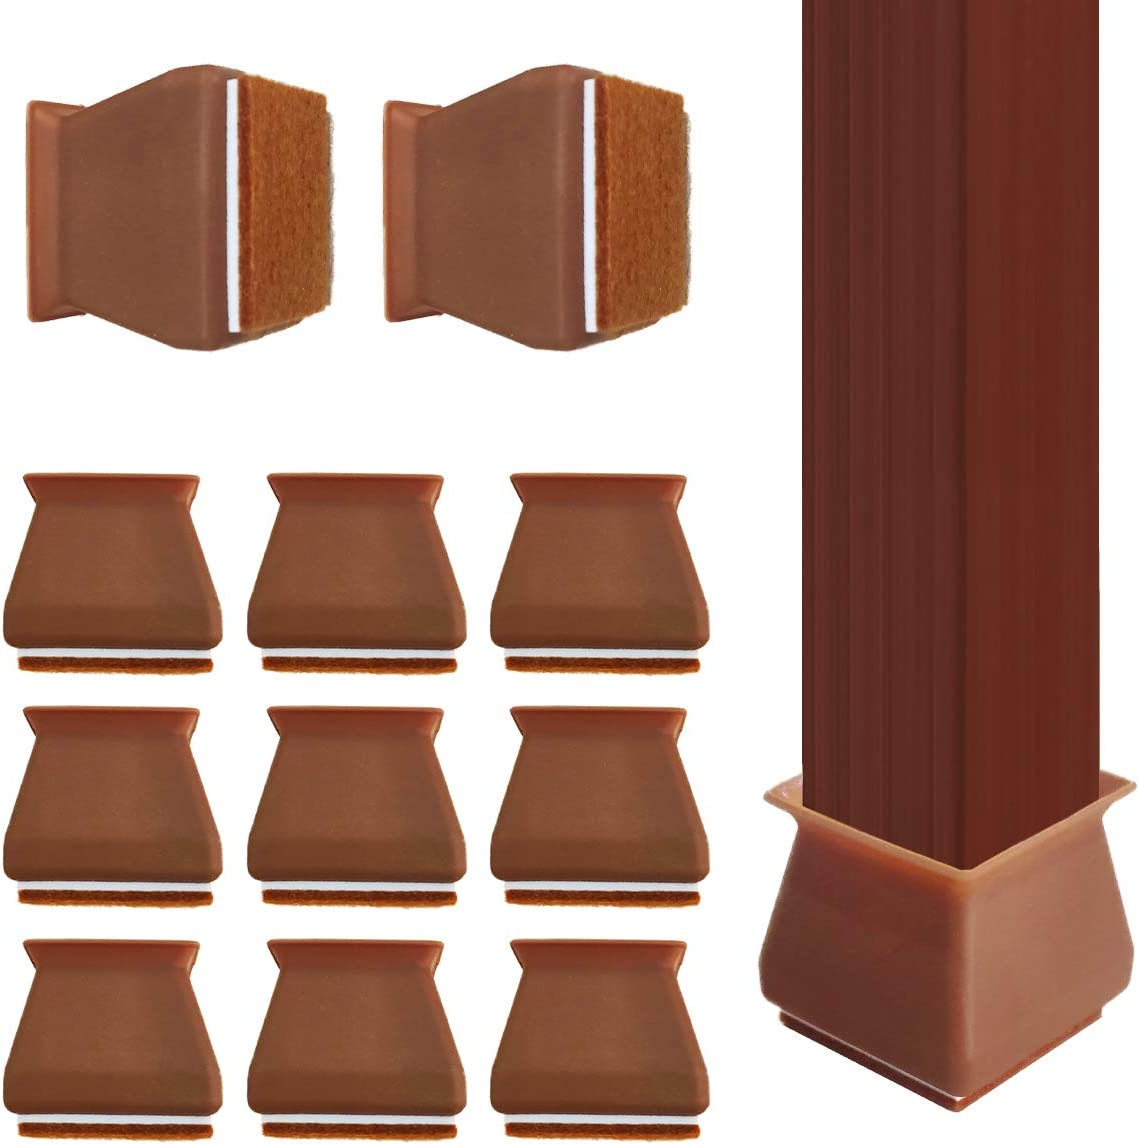 24 Pack Chair Leg caps Square, Silicone Chair Leg Floor Protectors Furniture Protection Cover with Felt Pads Anti-Slip Chair Floor Pads (Coffee)